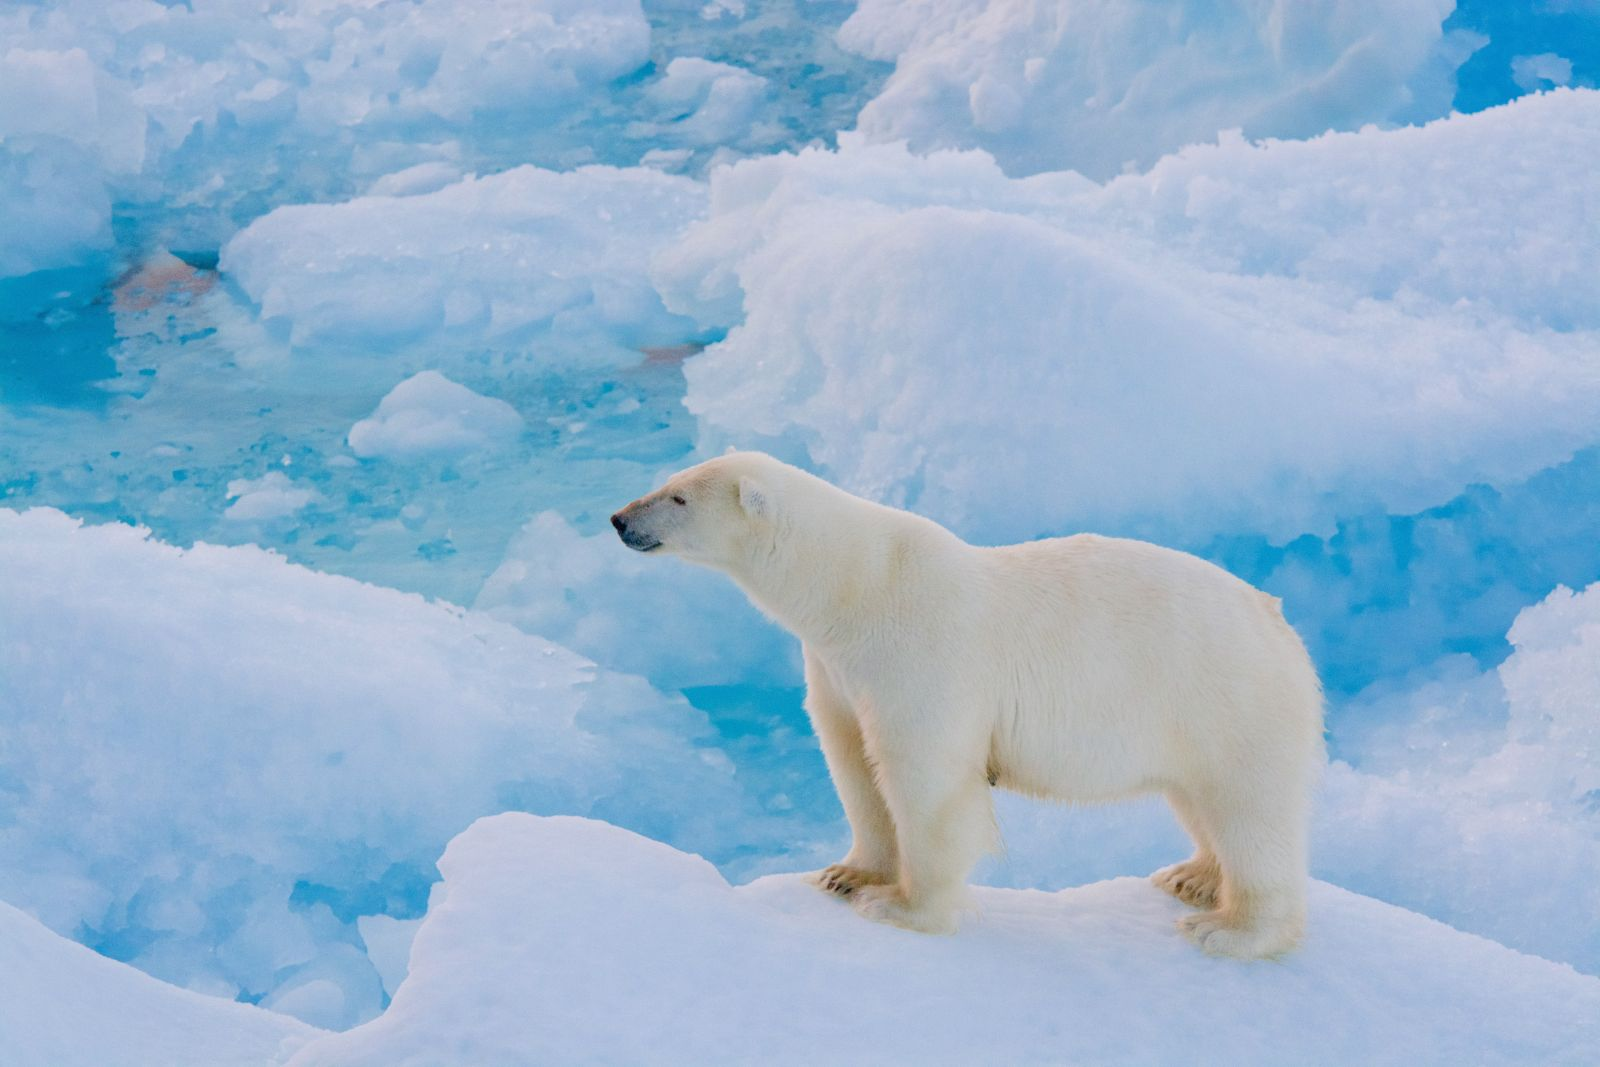 An Awesome Sighting Of Polar Bears In Arctic Canada